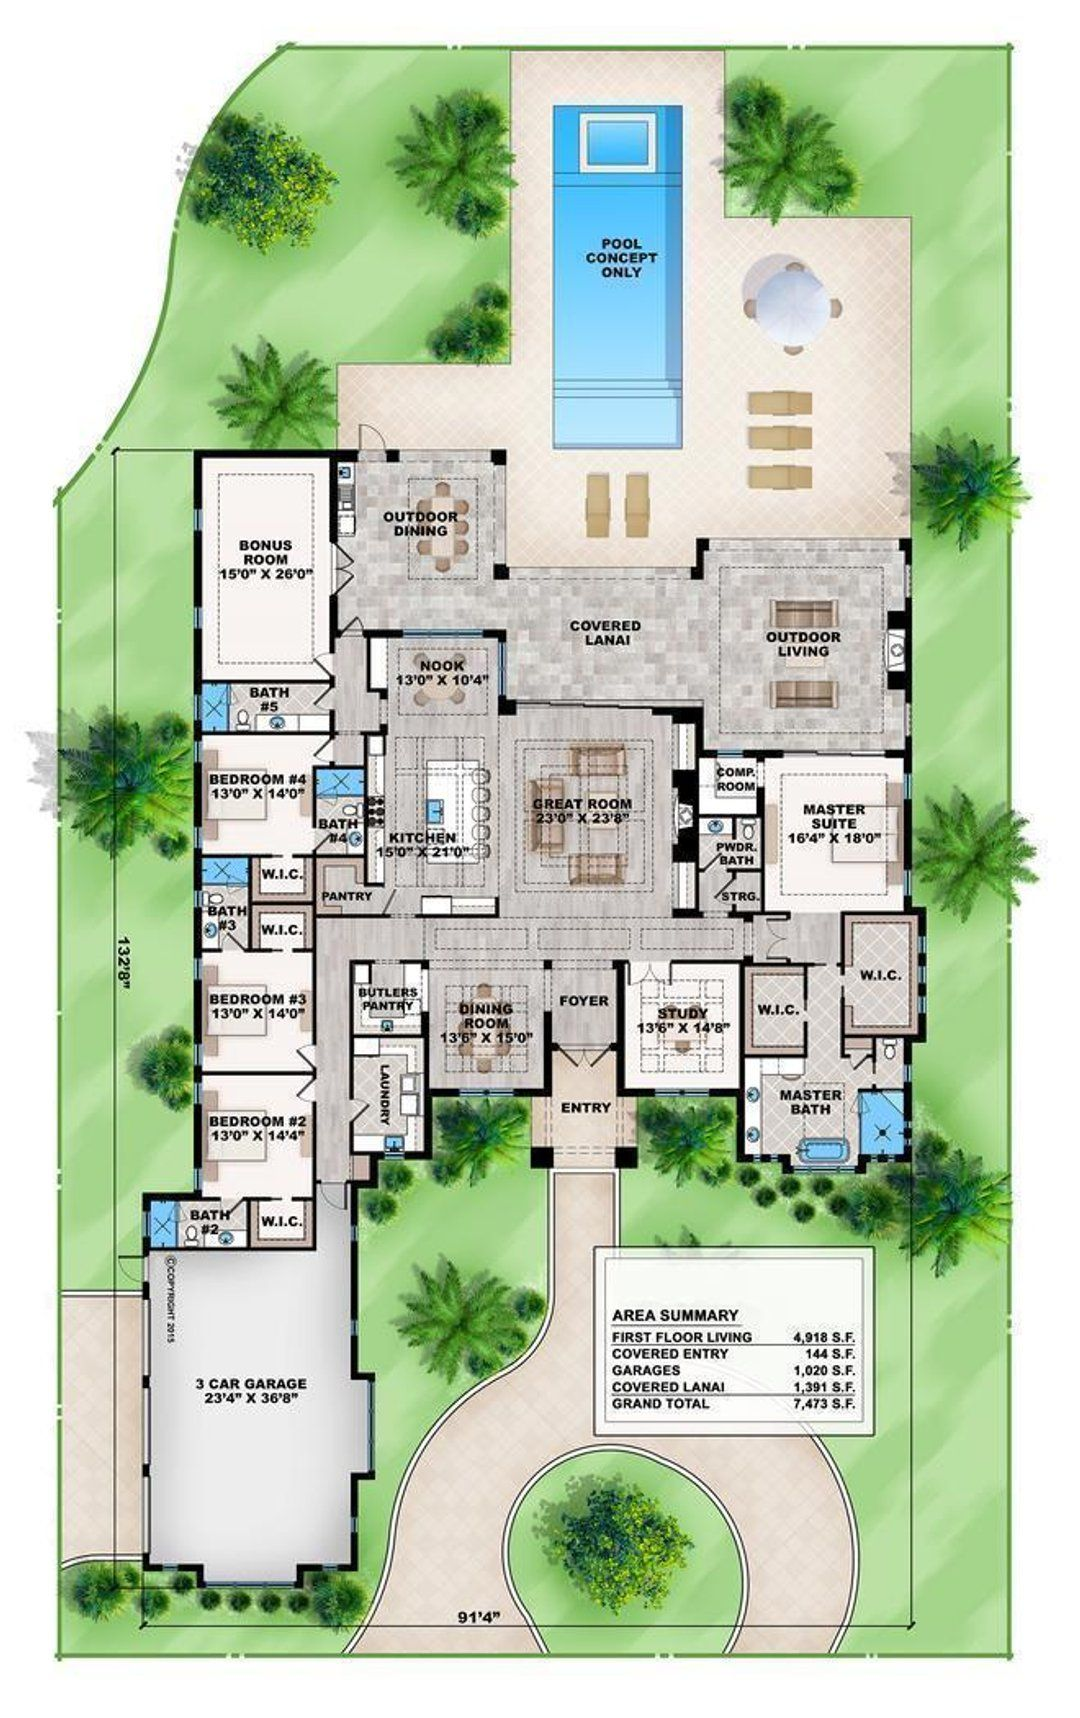 Hpm Home Plans Home Plan 009 4918 In 2021 Contemporary House Plans Dream House Plans House Floor Plans Main floor living house plans